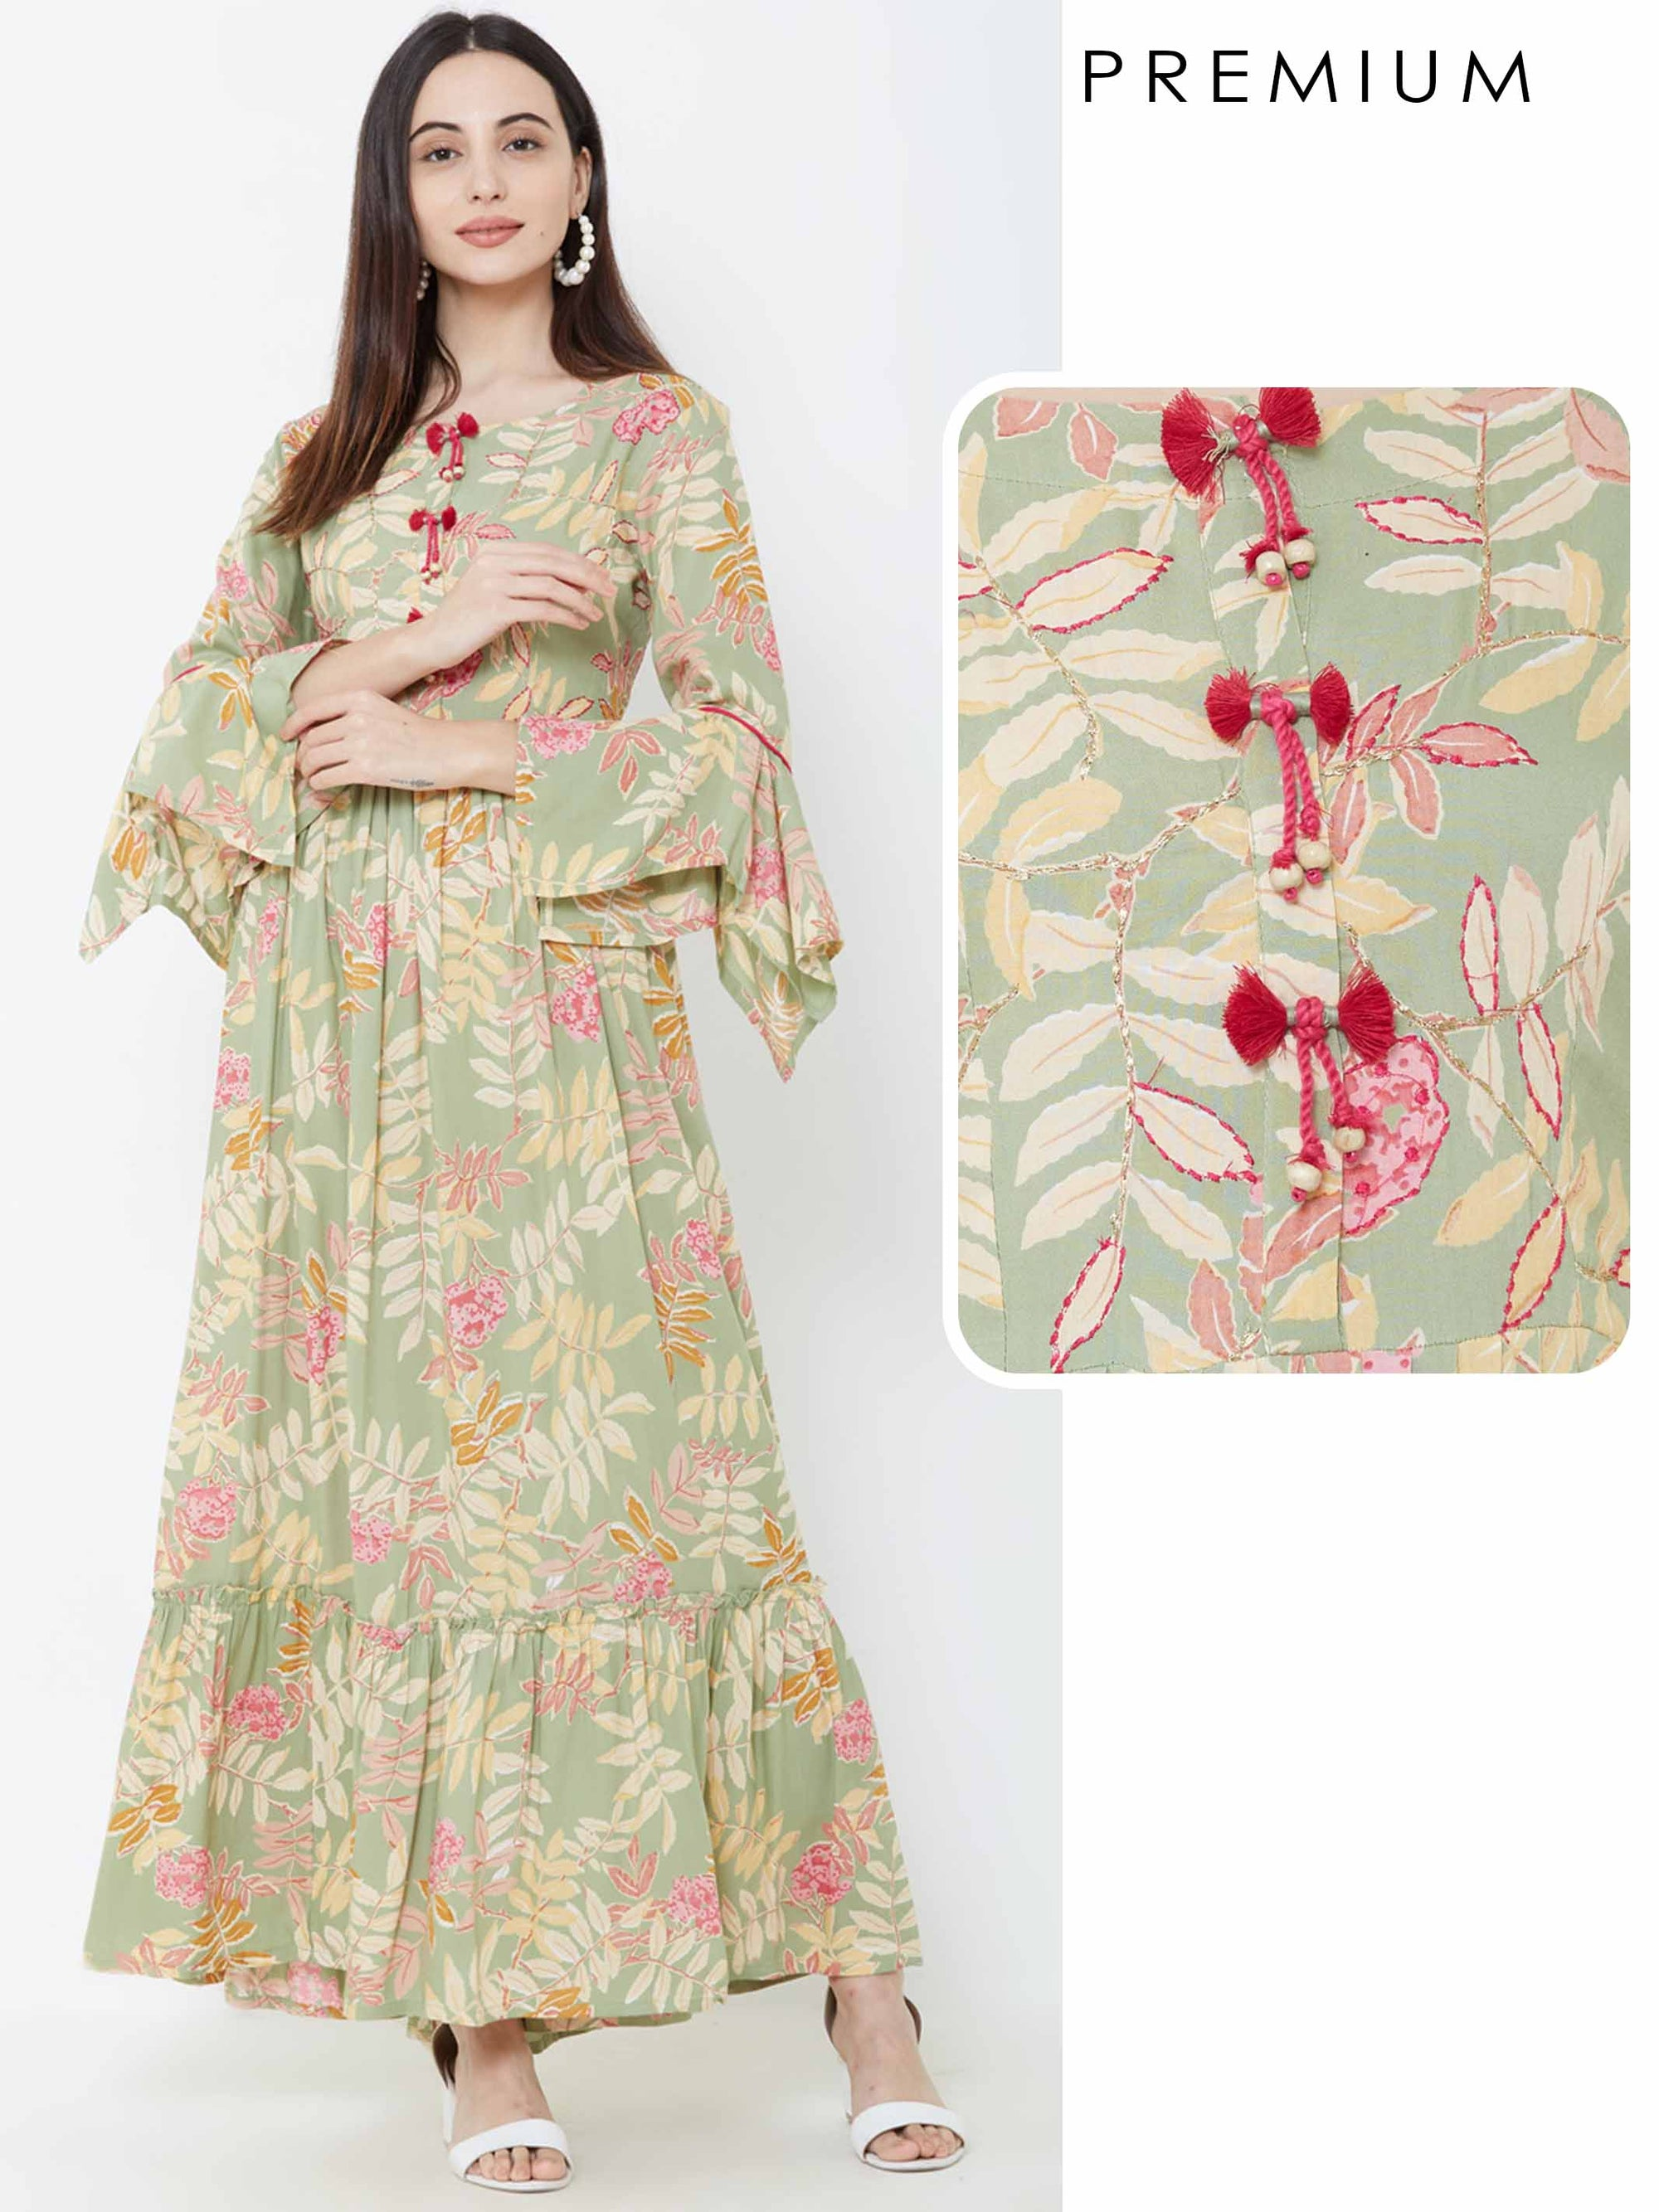 Autumn Leaf Printed & Tassel Detailed Maxi – Green